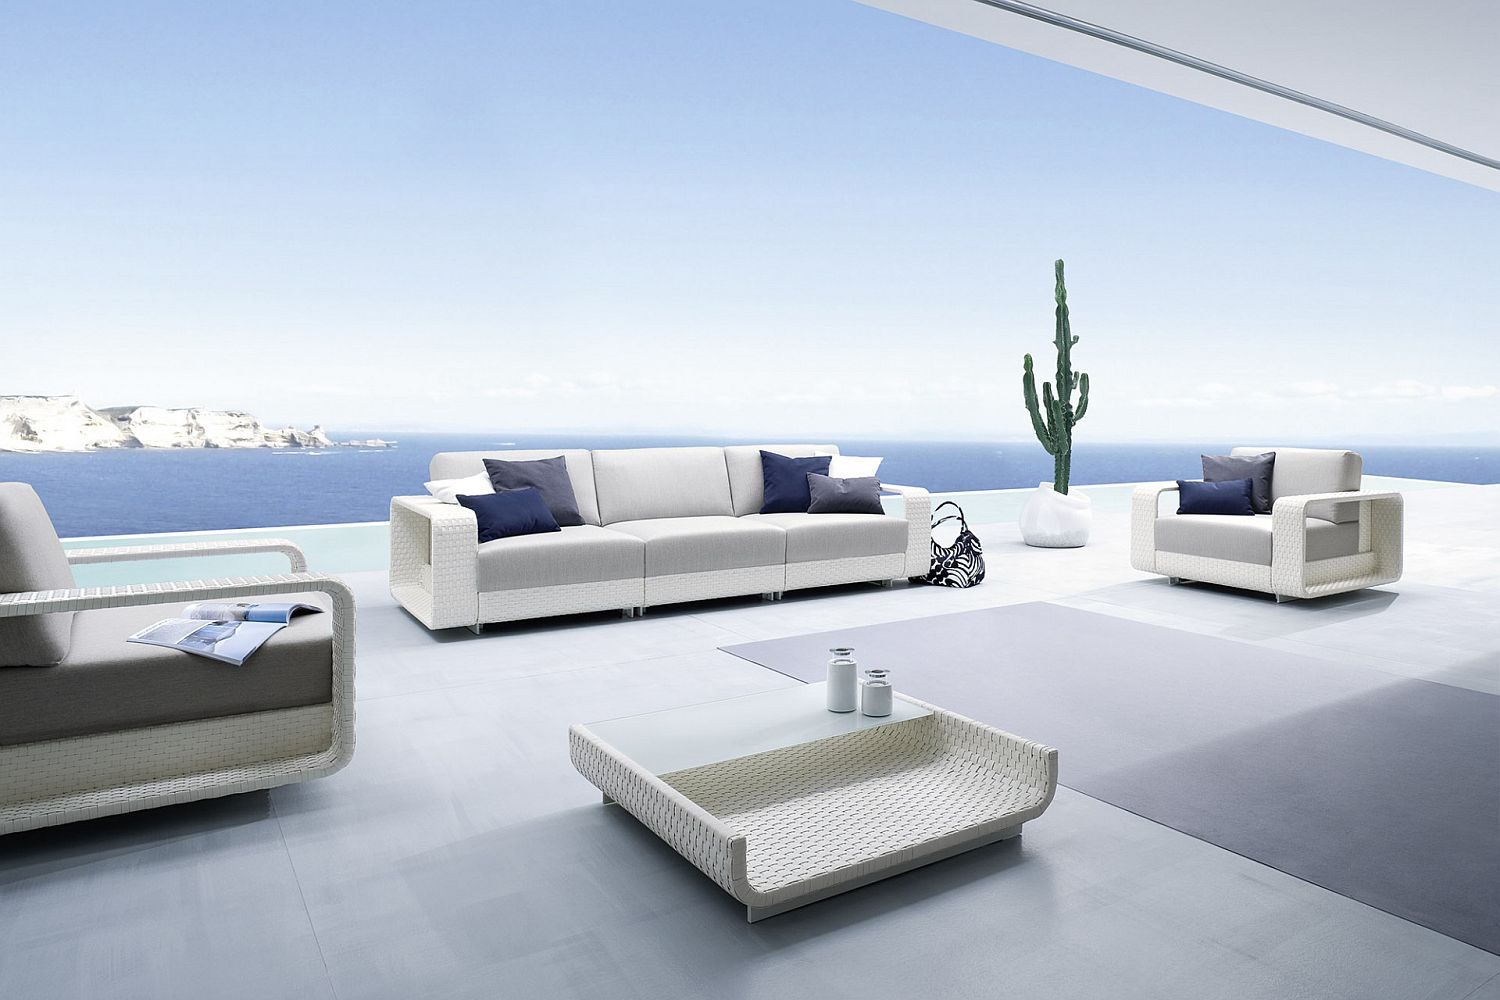 Blue, white and gray outdoor furniture for the coastal style deck